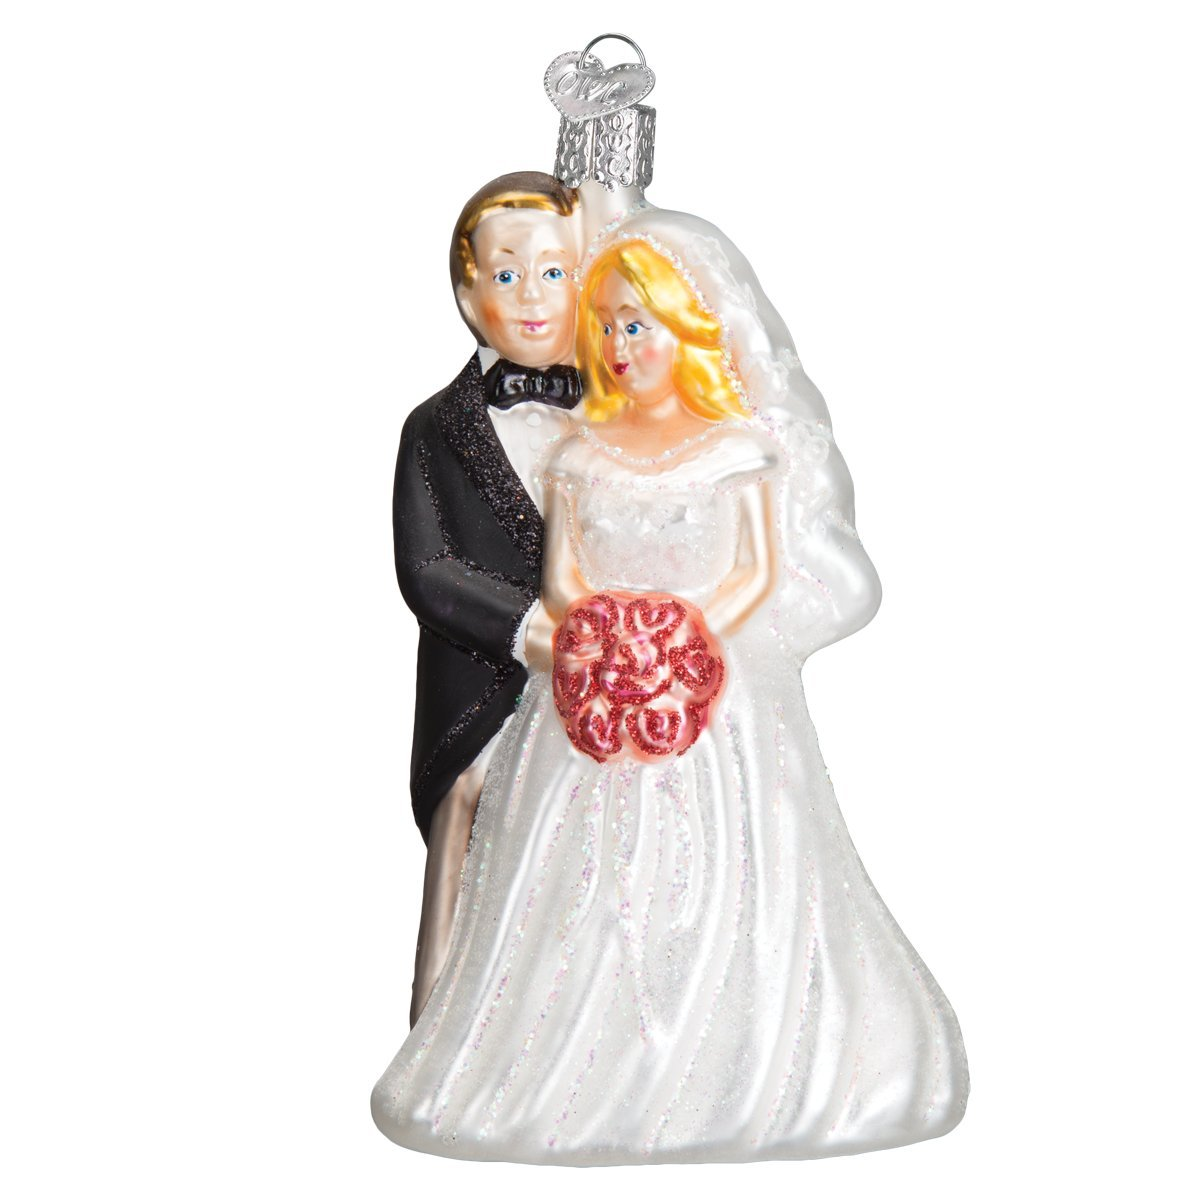 Old World Christmas Ornaments: Bridal Couple Glass Blown Ornaments for Christmas Tree